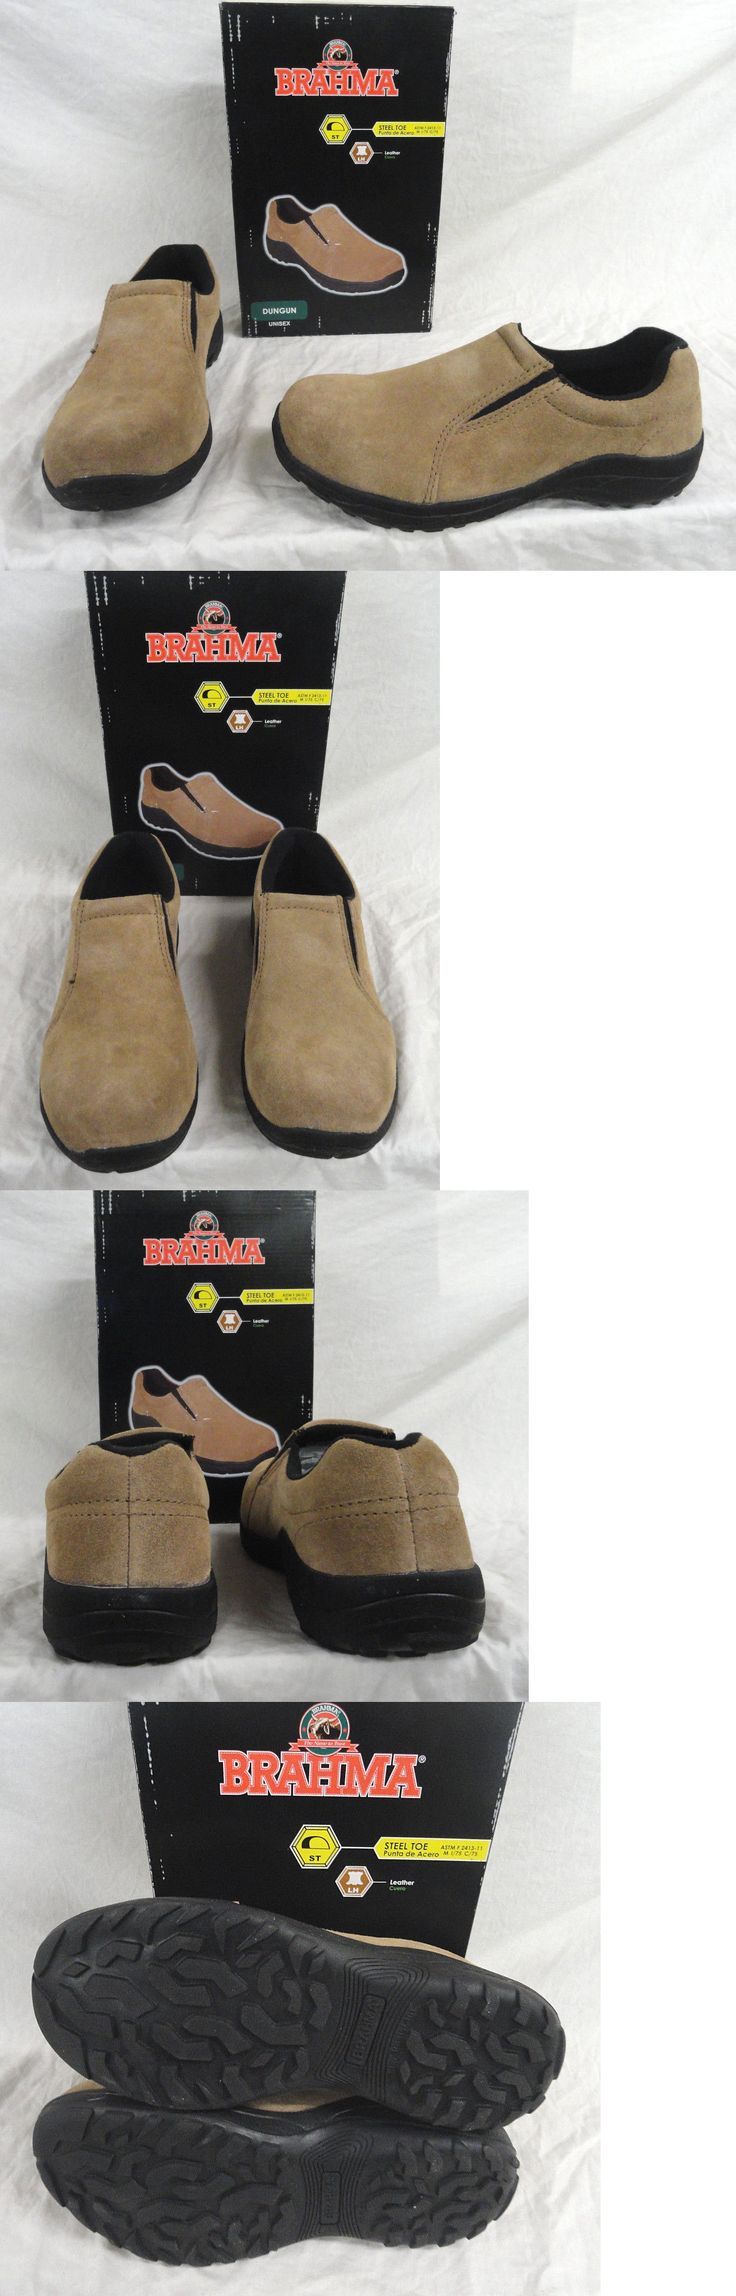 Occupational 11501: Brahma Mens Womens Leather Slip On Steel Toe Shoes >>>Super Fast Shipping!!! -> BUY IT NOW ONLY: $32.99 on eBay!